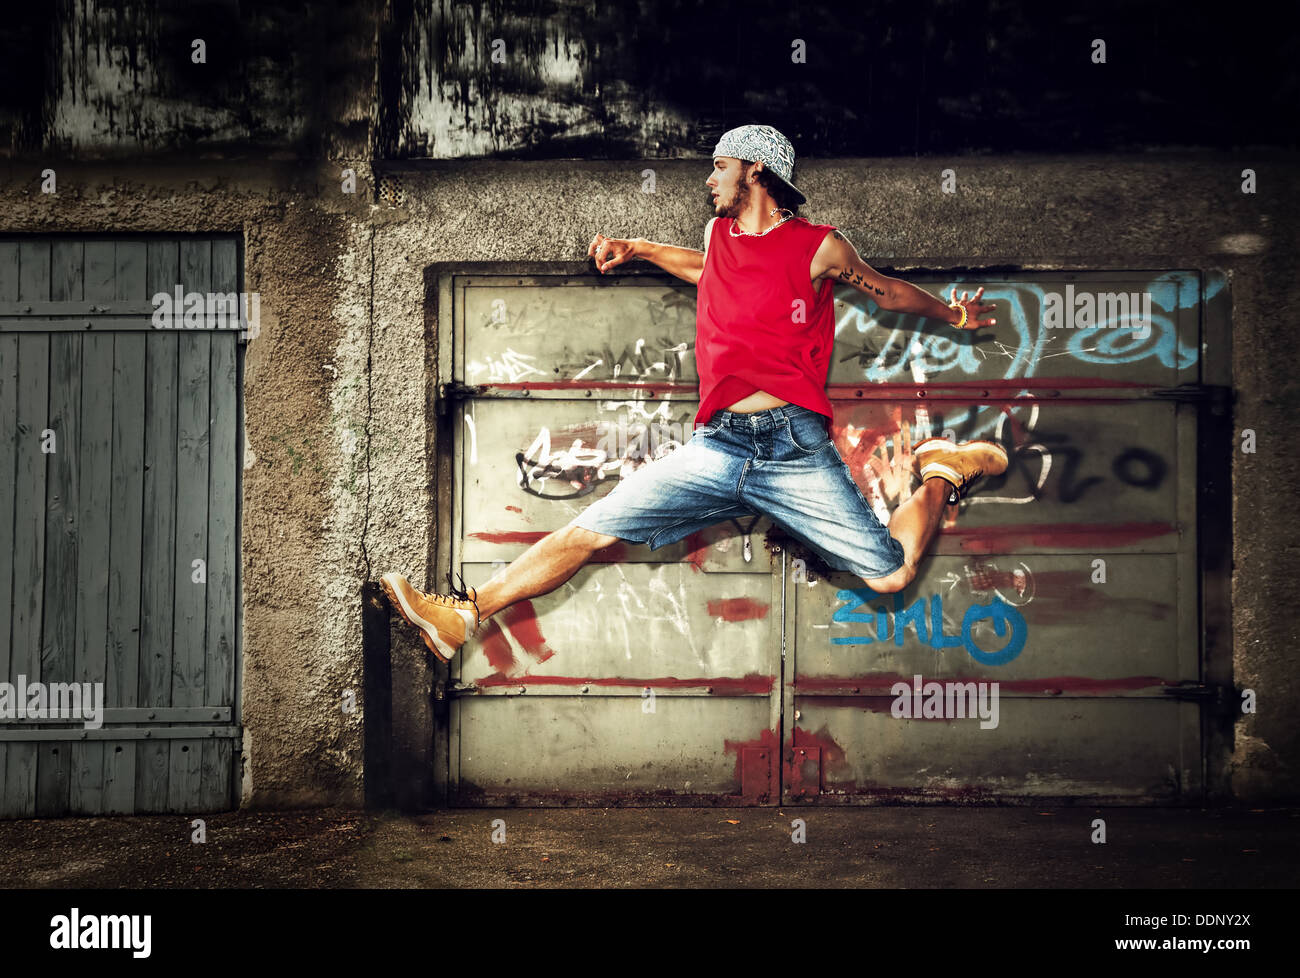 Jeune homme / DANSE / saut de l'adolescence sur graffiti grunge wall background Photo Stock